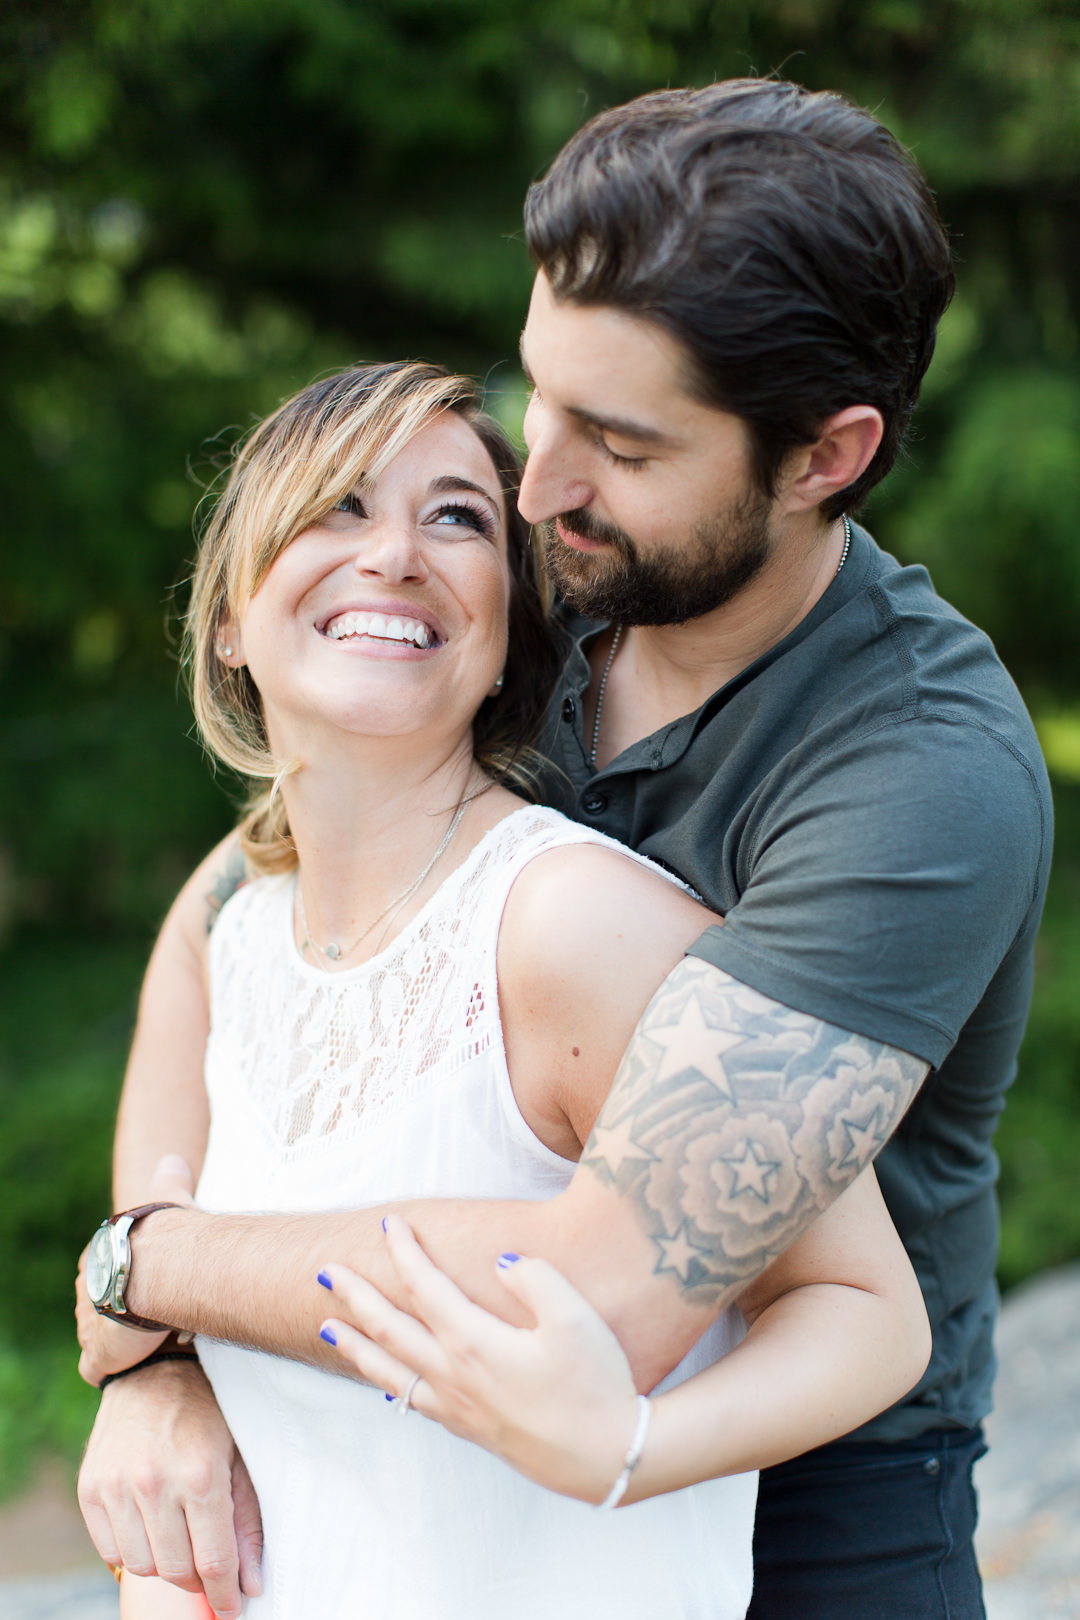 Melissa Kruse Photography - Eileen & Kenny Engagement Photos-135.jpg